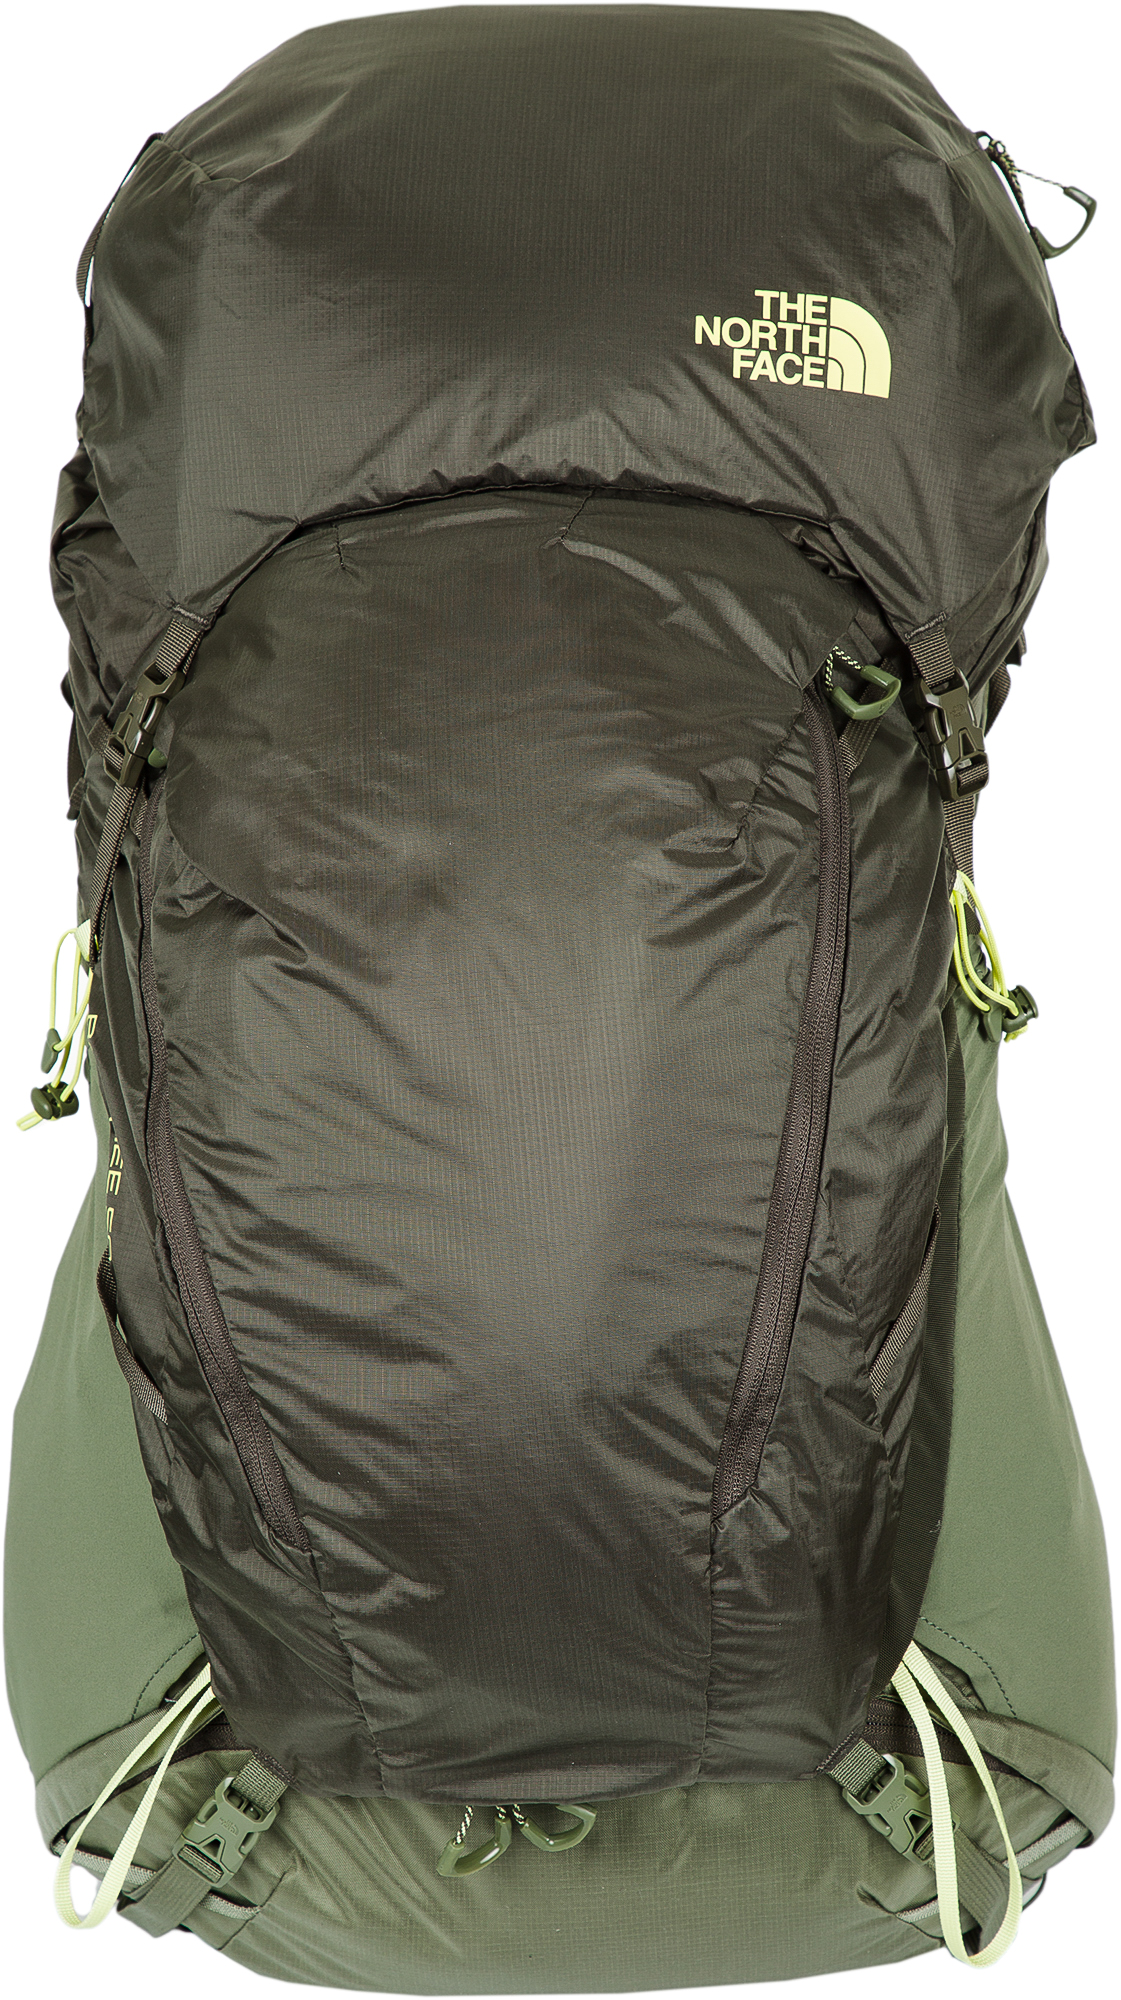 The North Face Рюкзак The North Face W Banchee - 50 рюкзак the north face the north face lineage ruck синий 23л